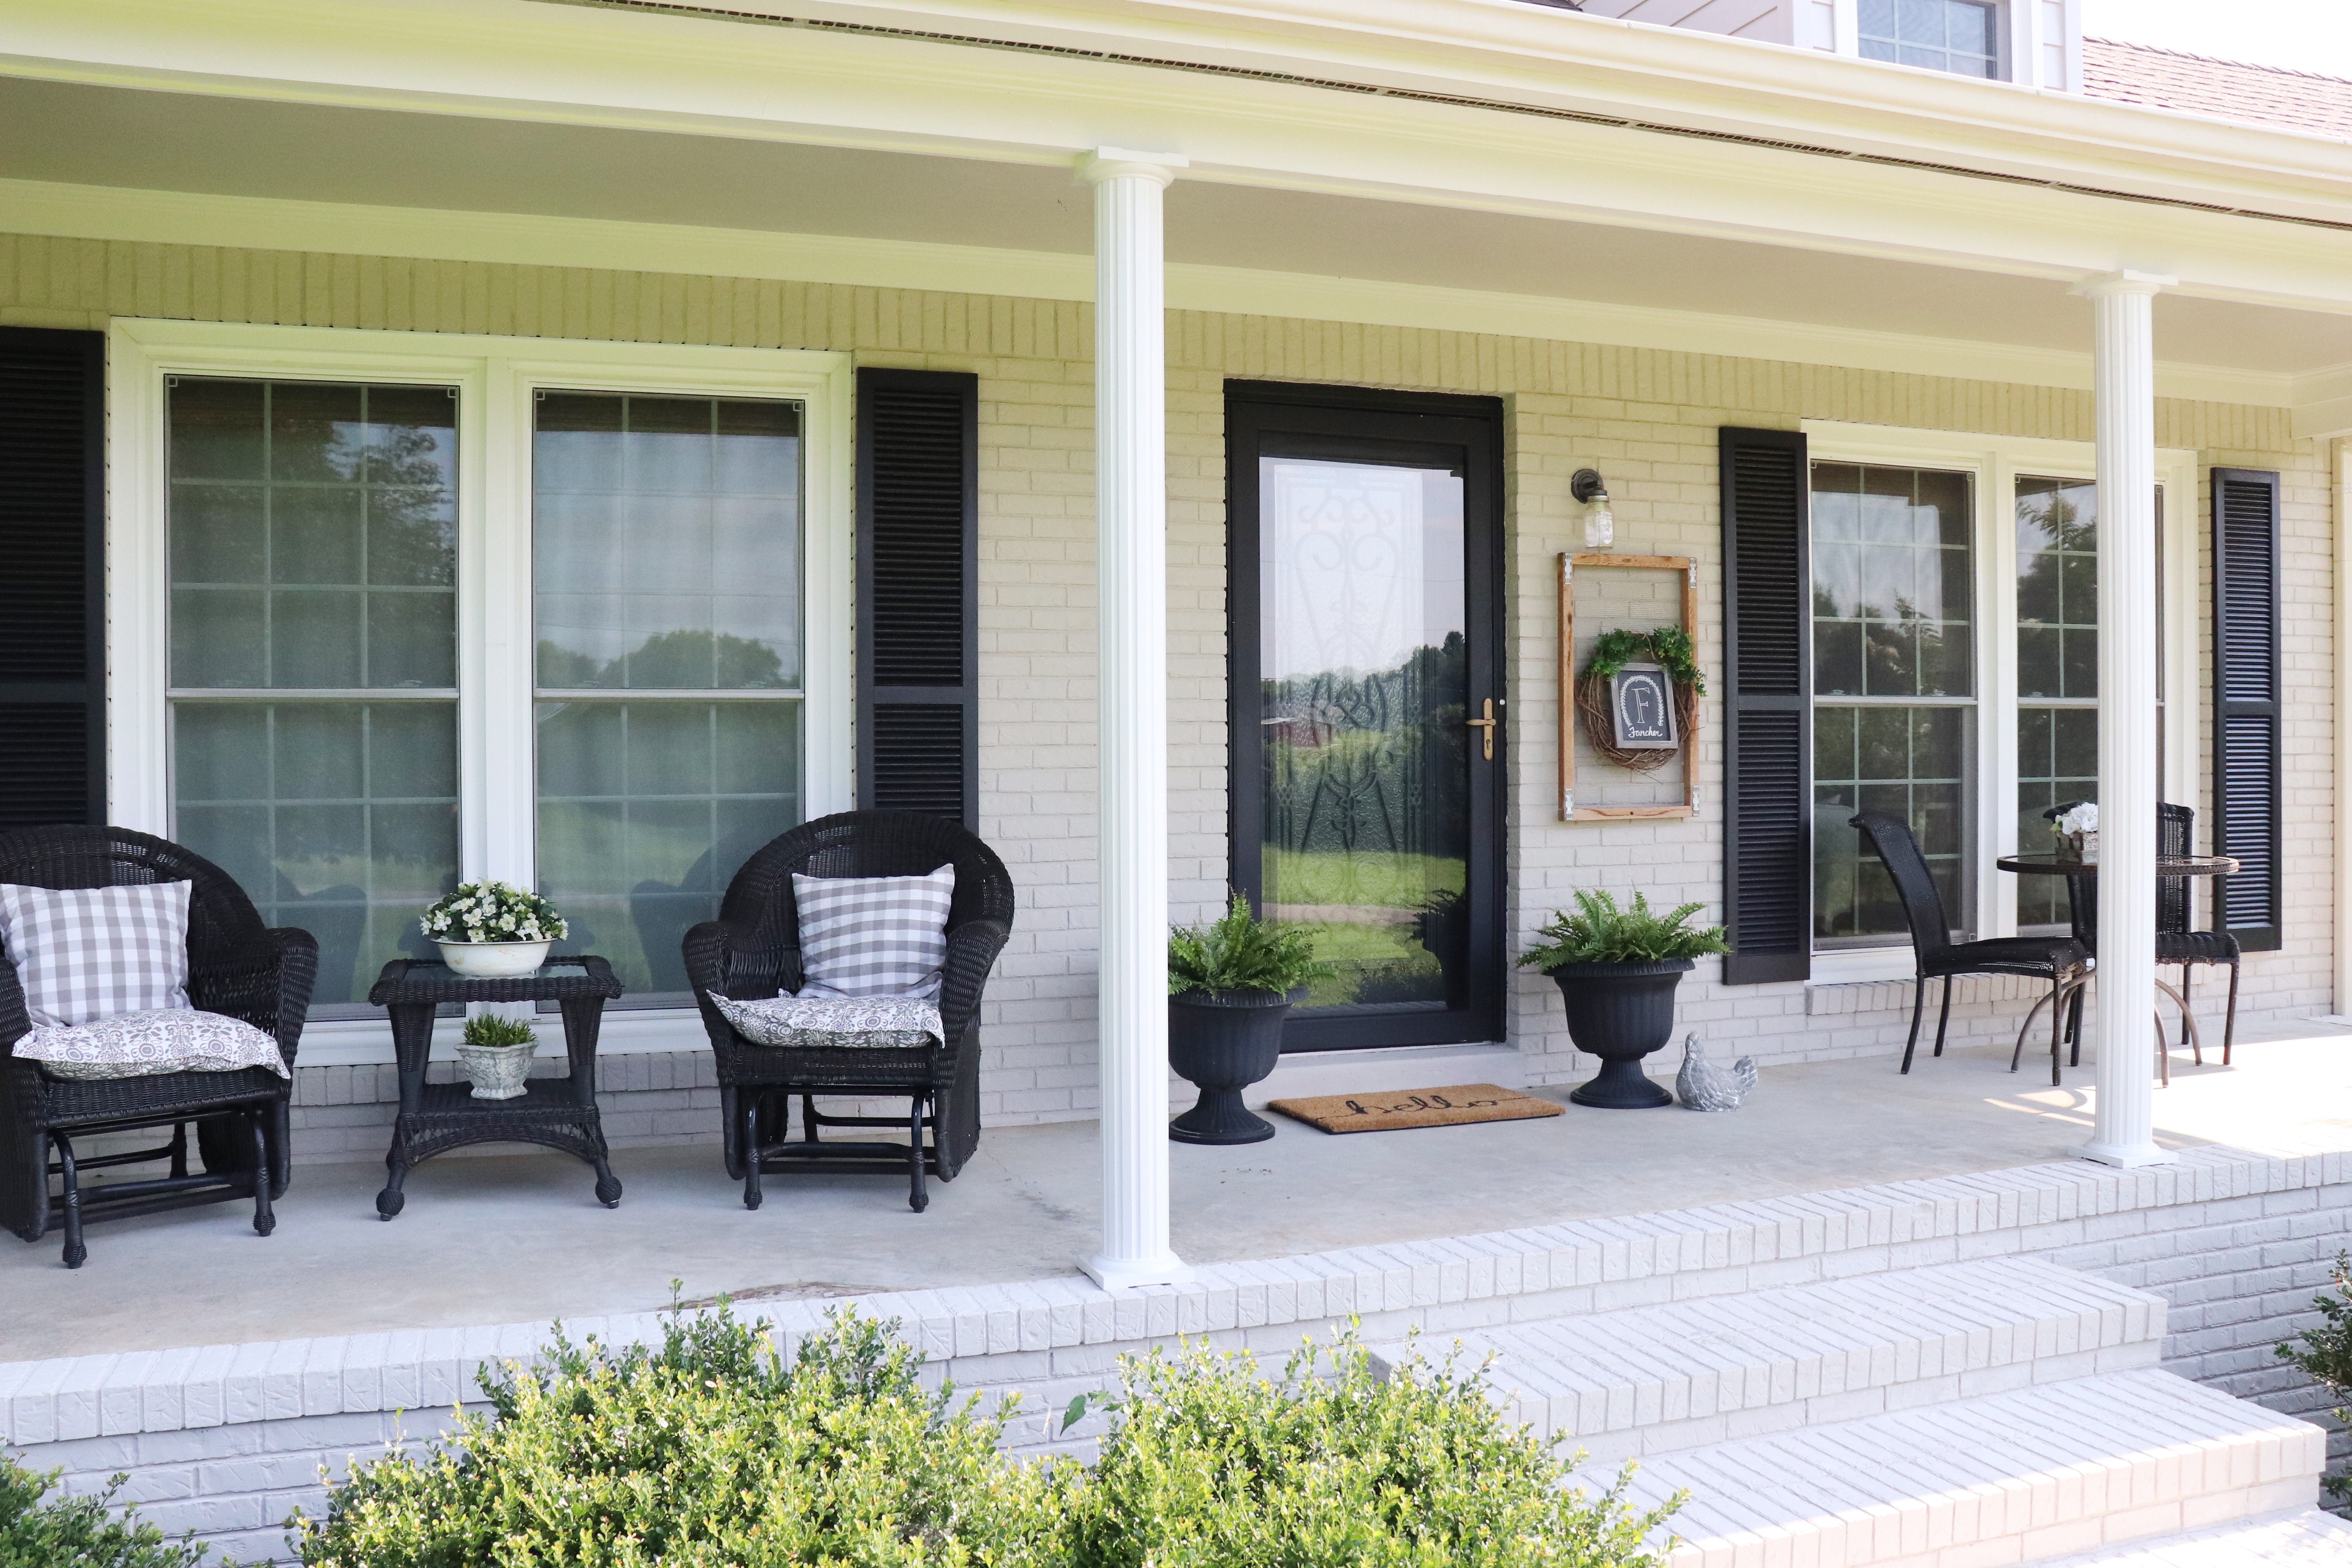 12 Farmhouse Exterior Ideas That Are the Definition of Rustic-Chic | Hunker